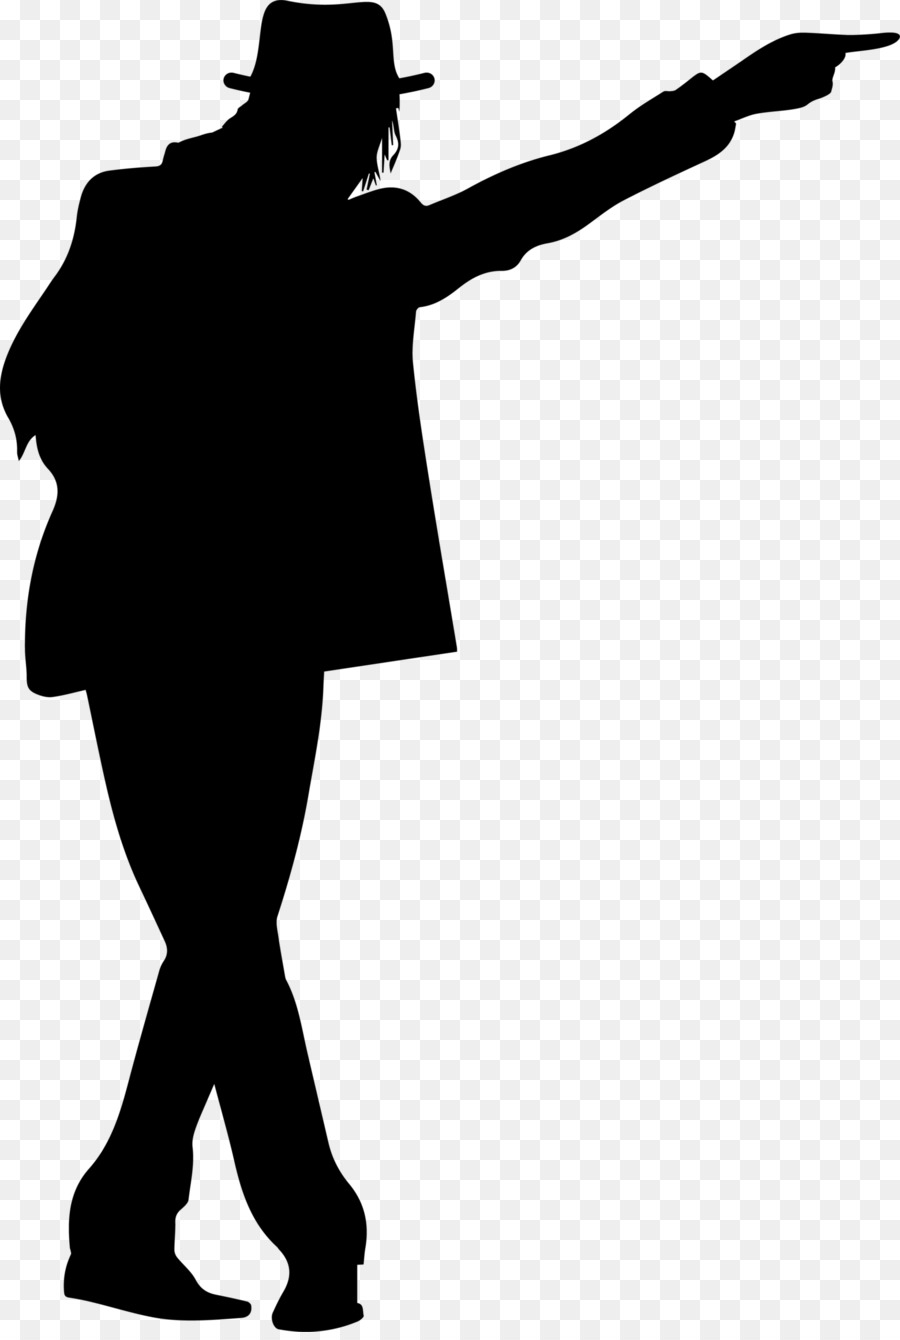 Man Cartoon clipart - Silhouette, Drawing, Art, transparent ... graphic library